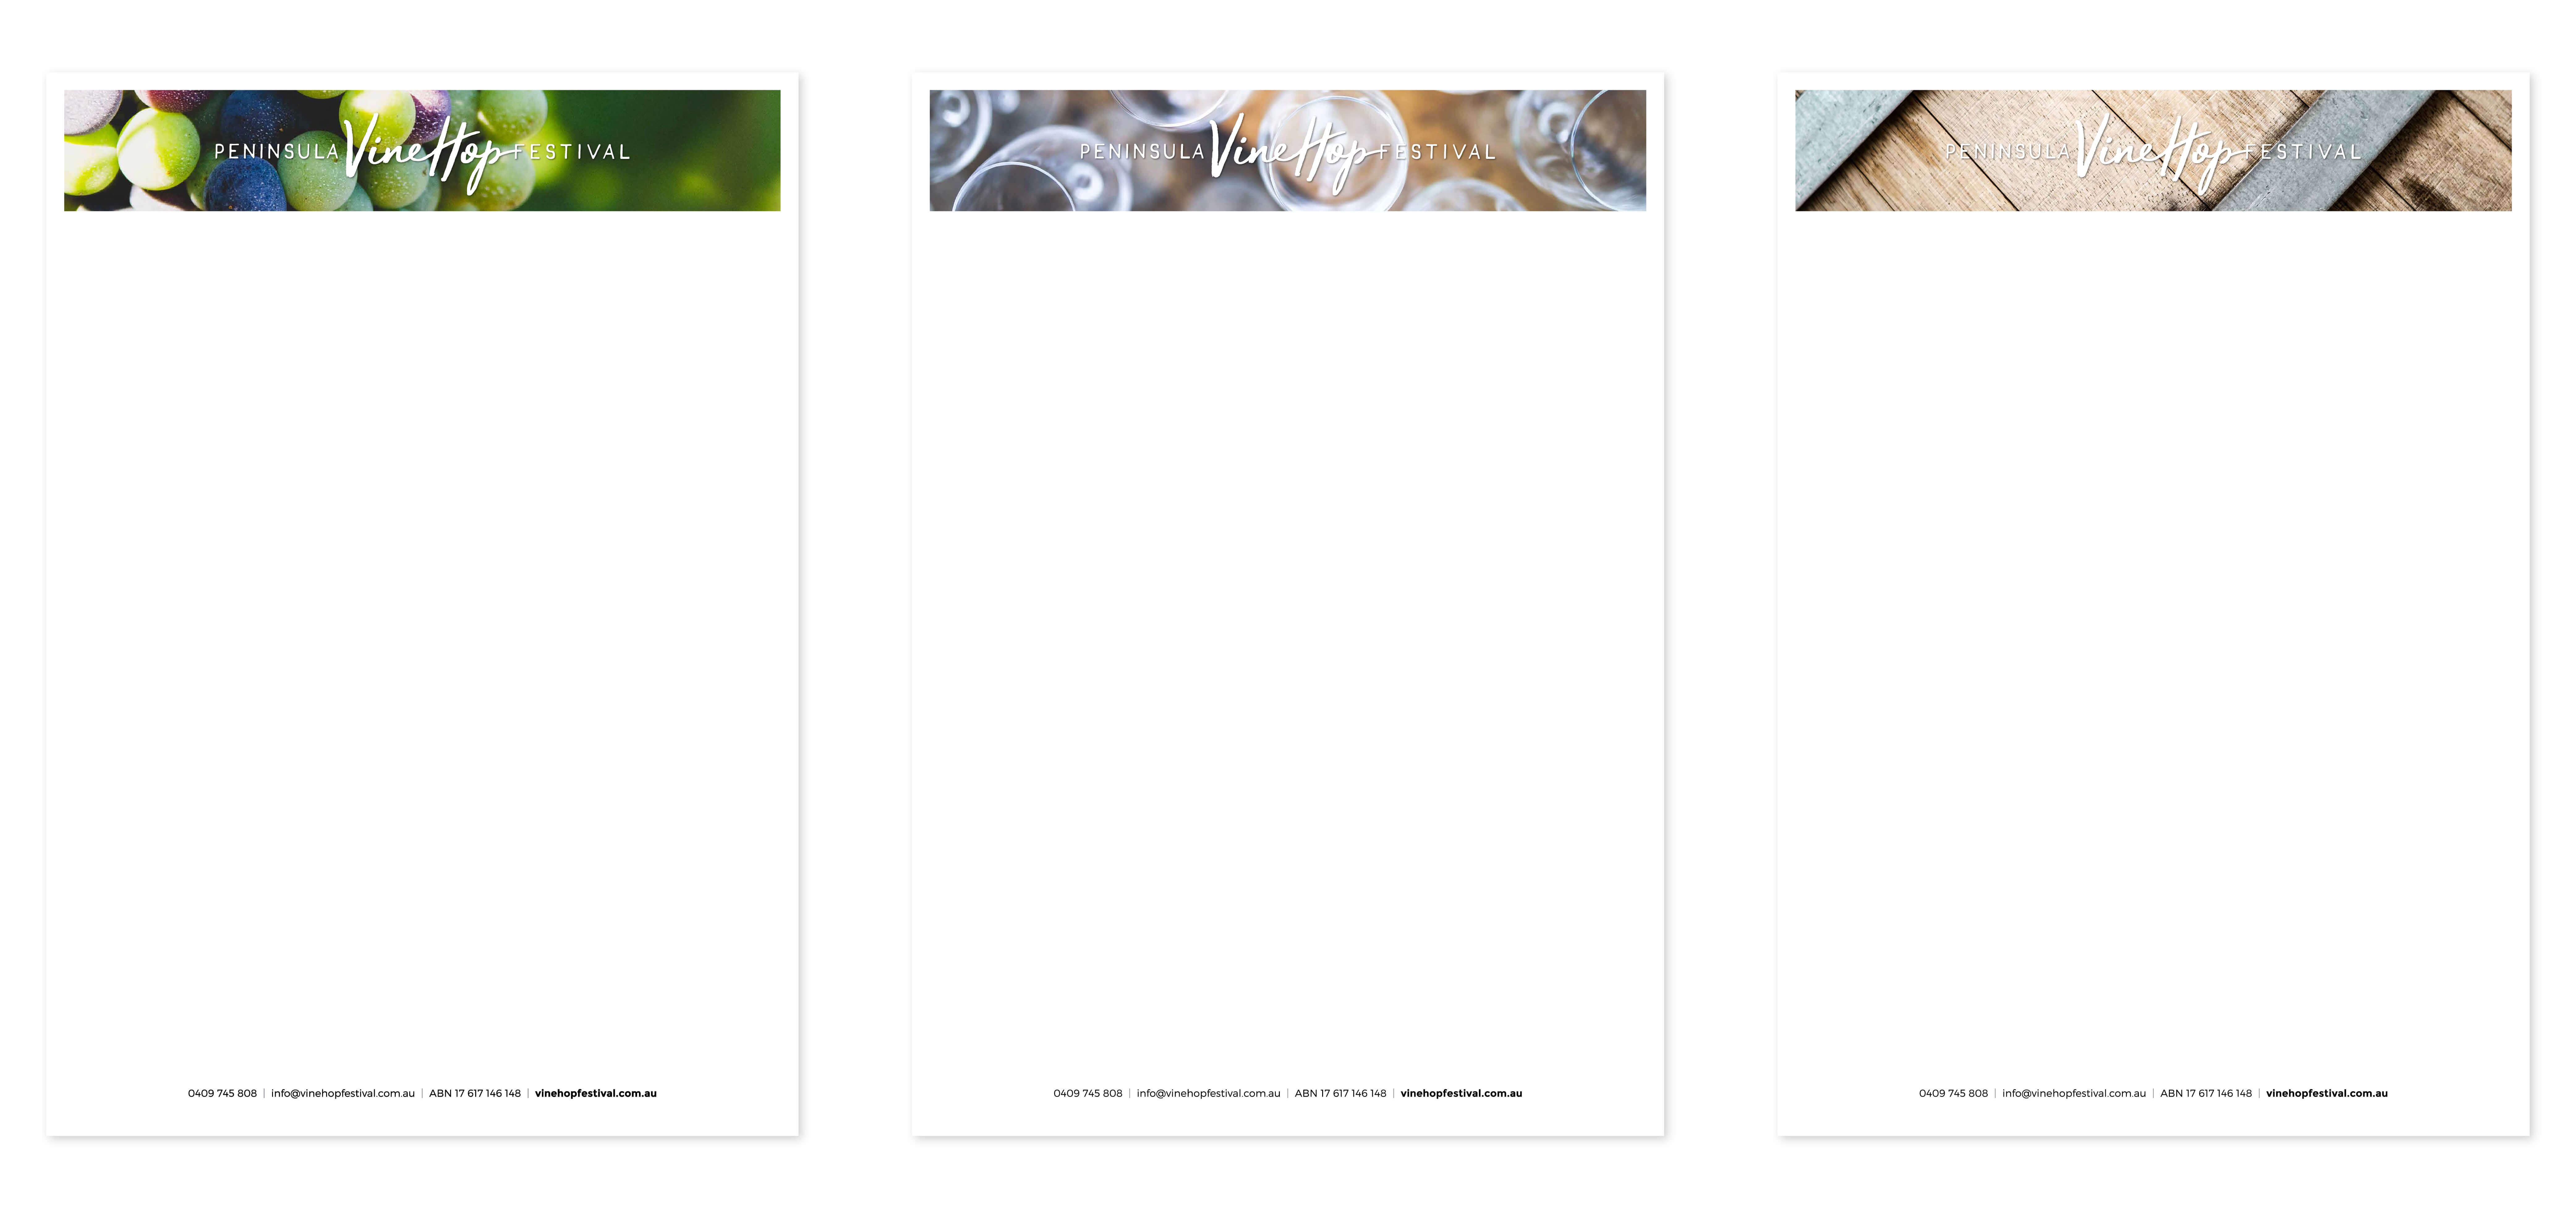 VineHop Mornington Peninsula Letterhead Design